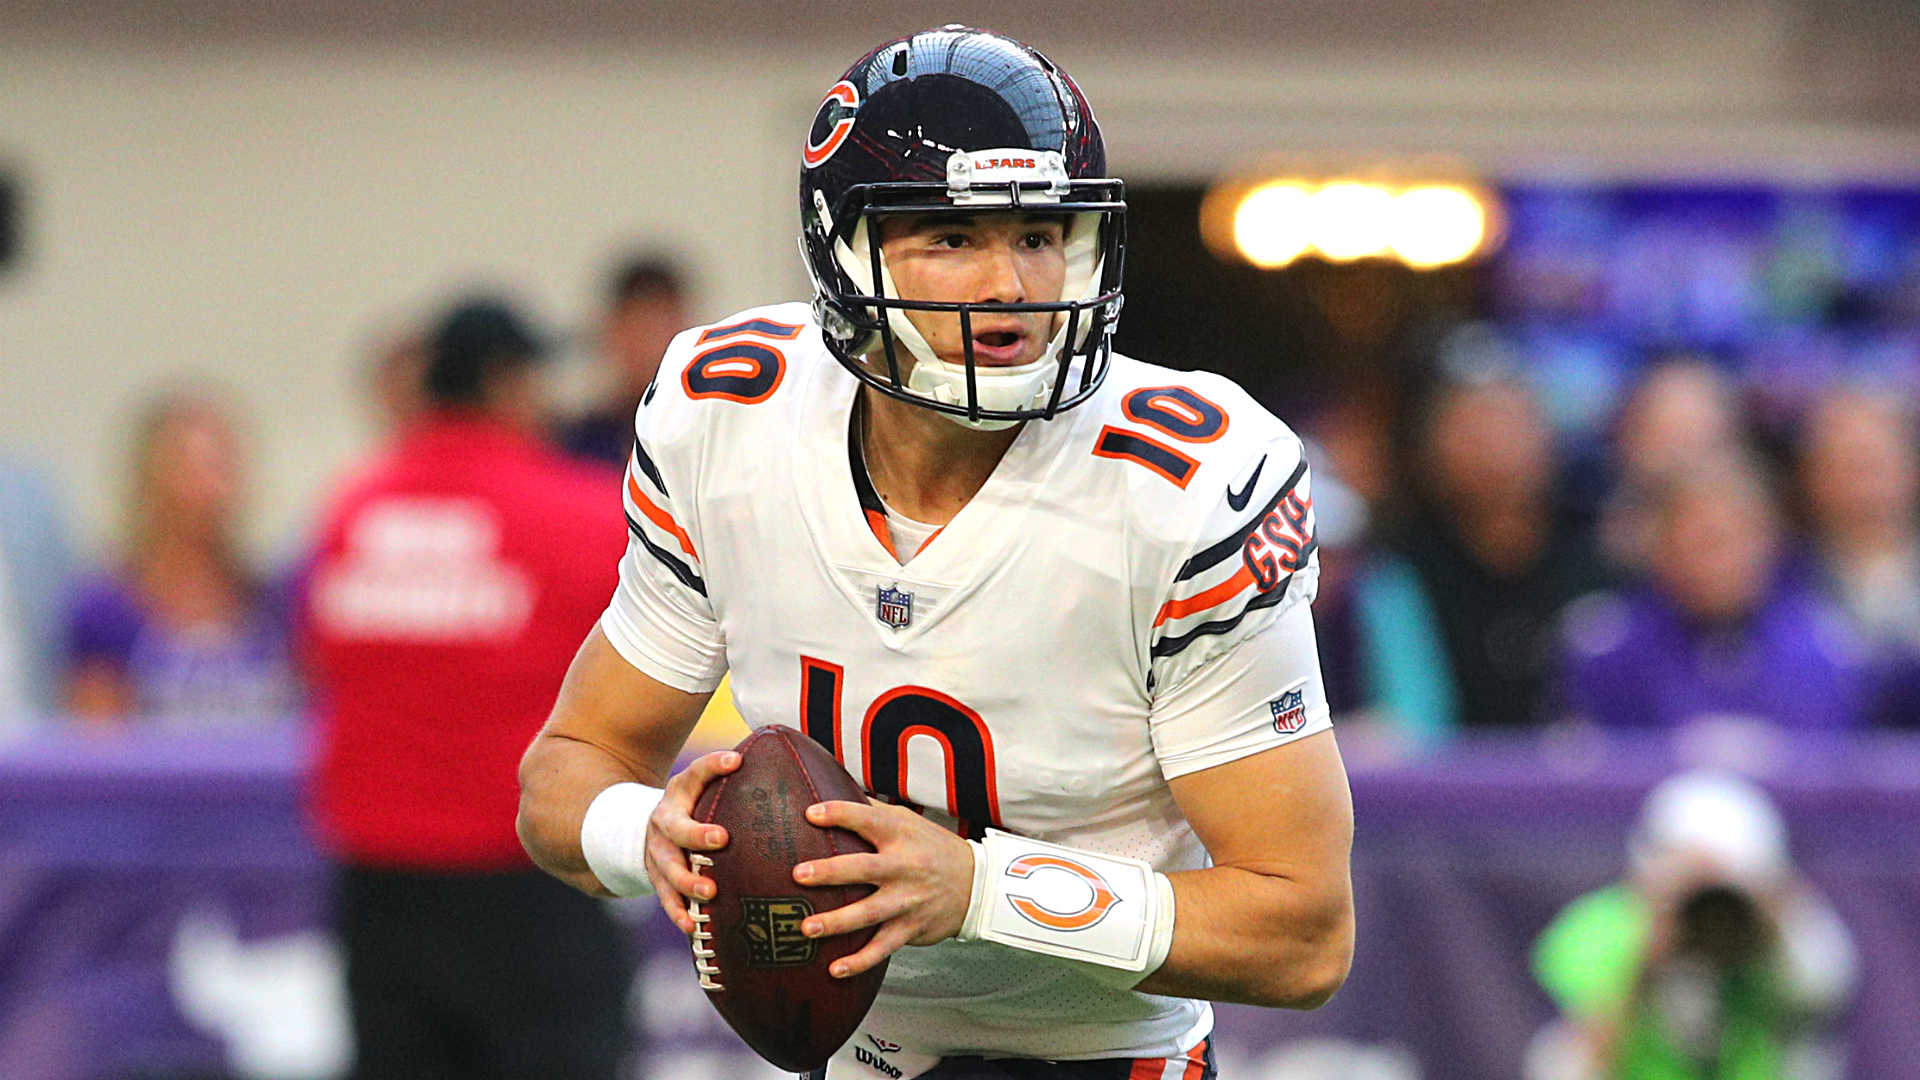 Mitchell-trubisky-bears-071018-getty-ftr_1i10dv22o9vo410mc15yfp16ou